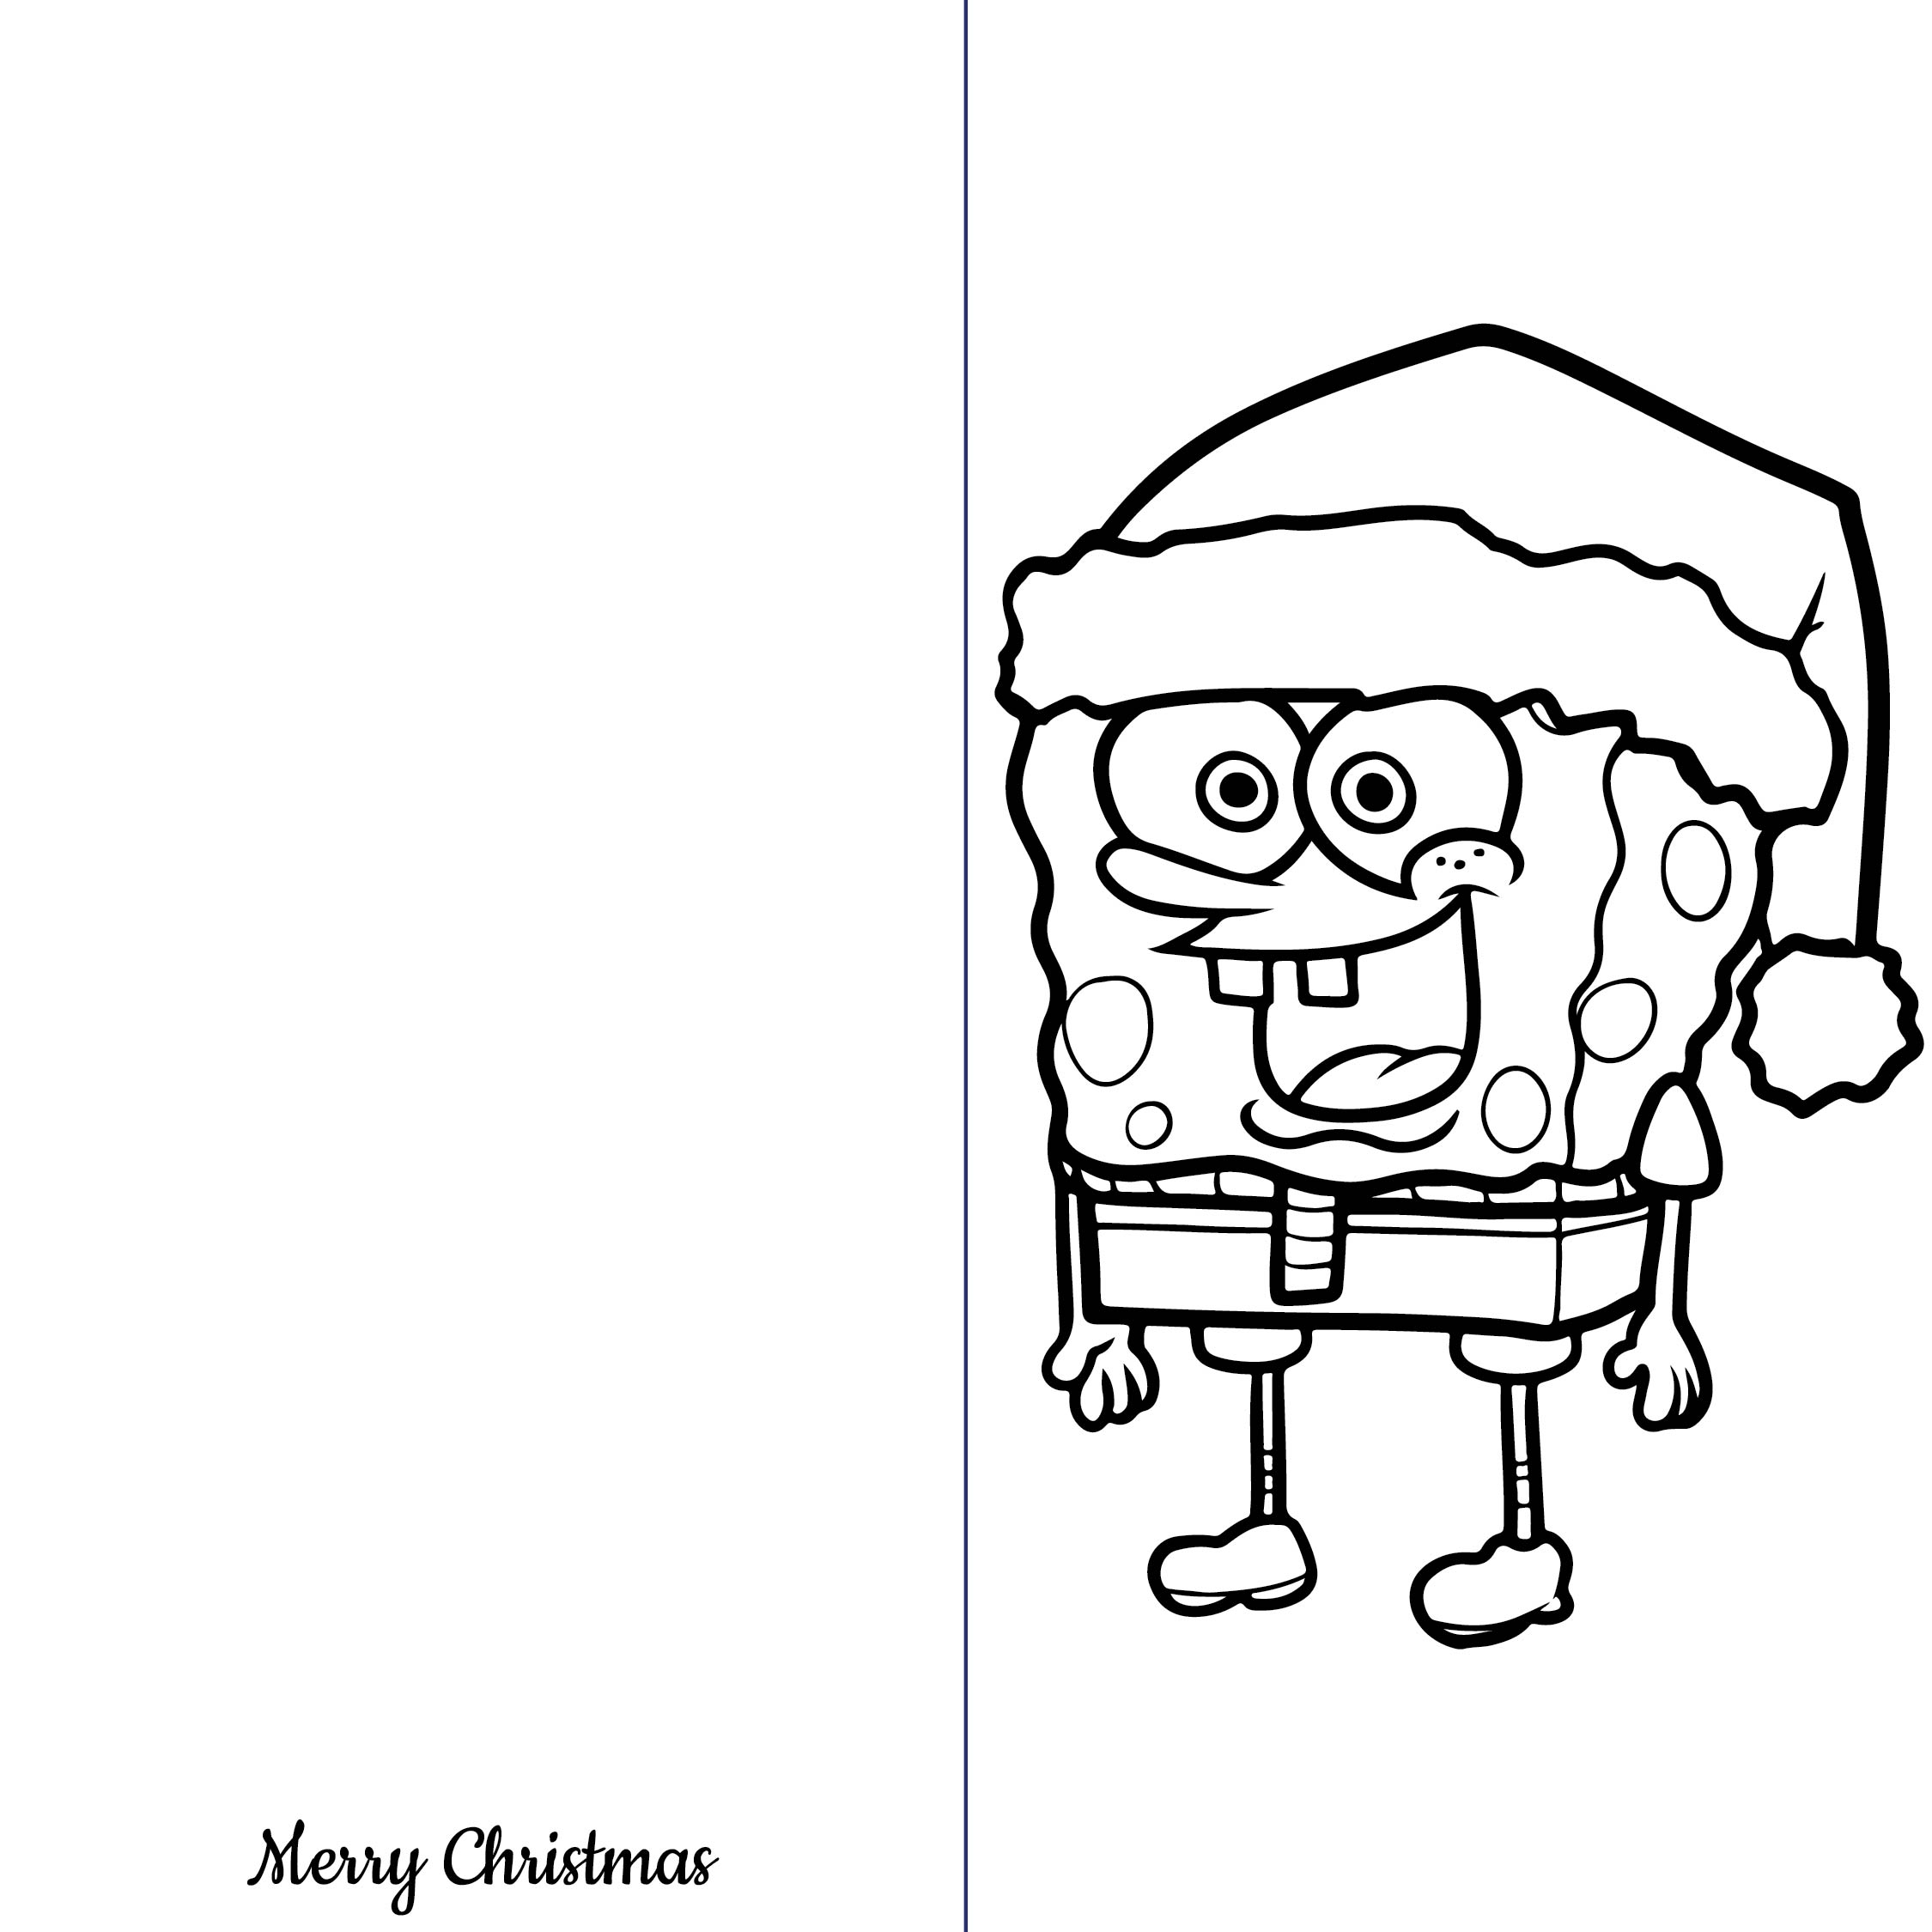 Printable Christmas Card Coloring Pages